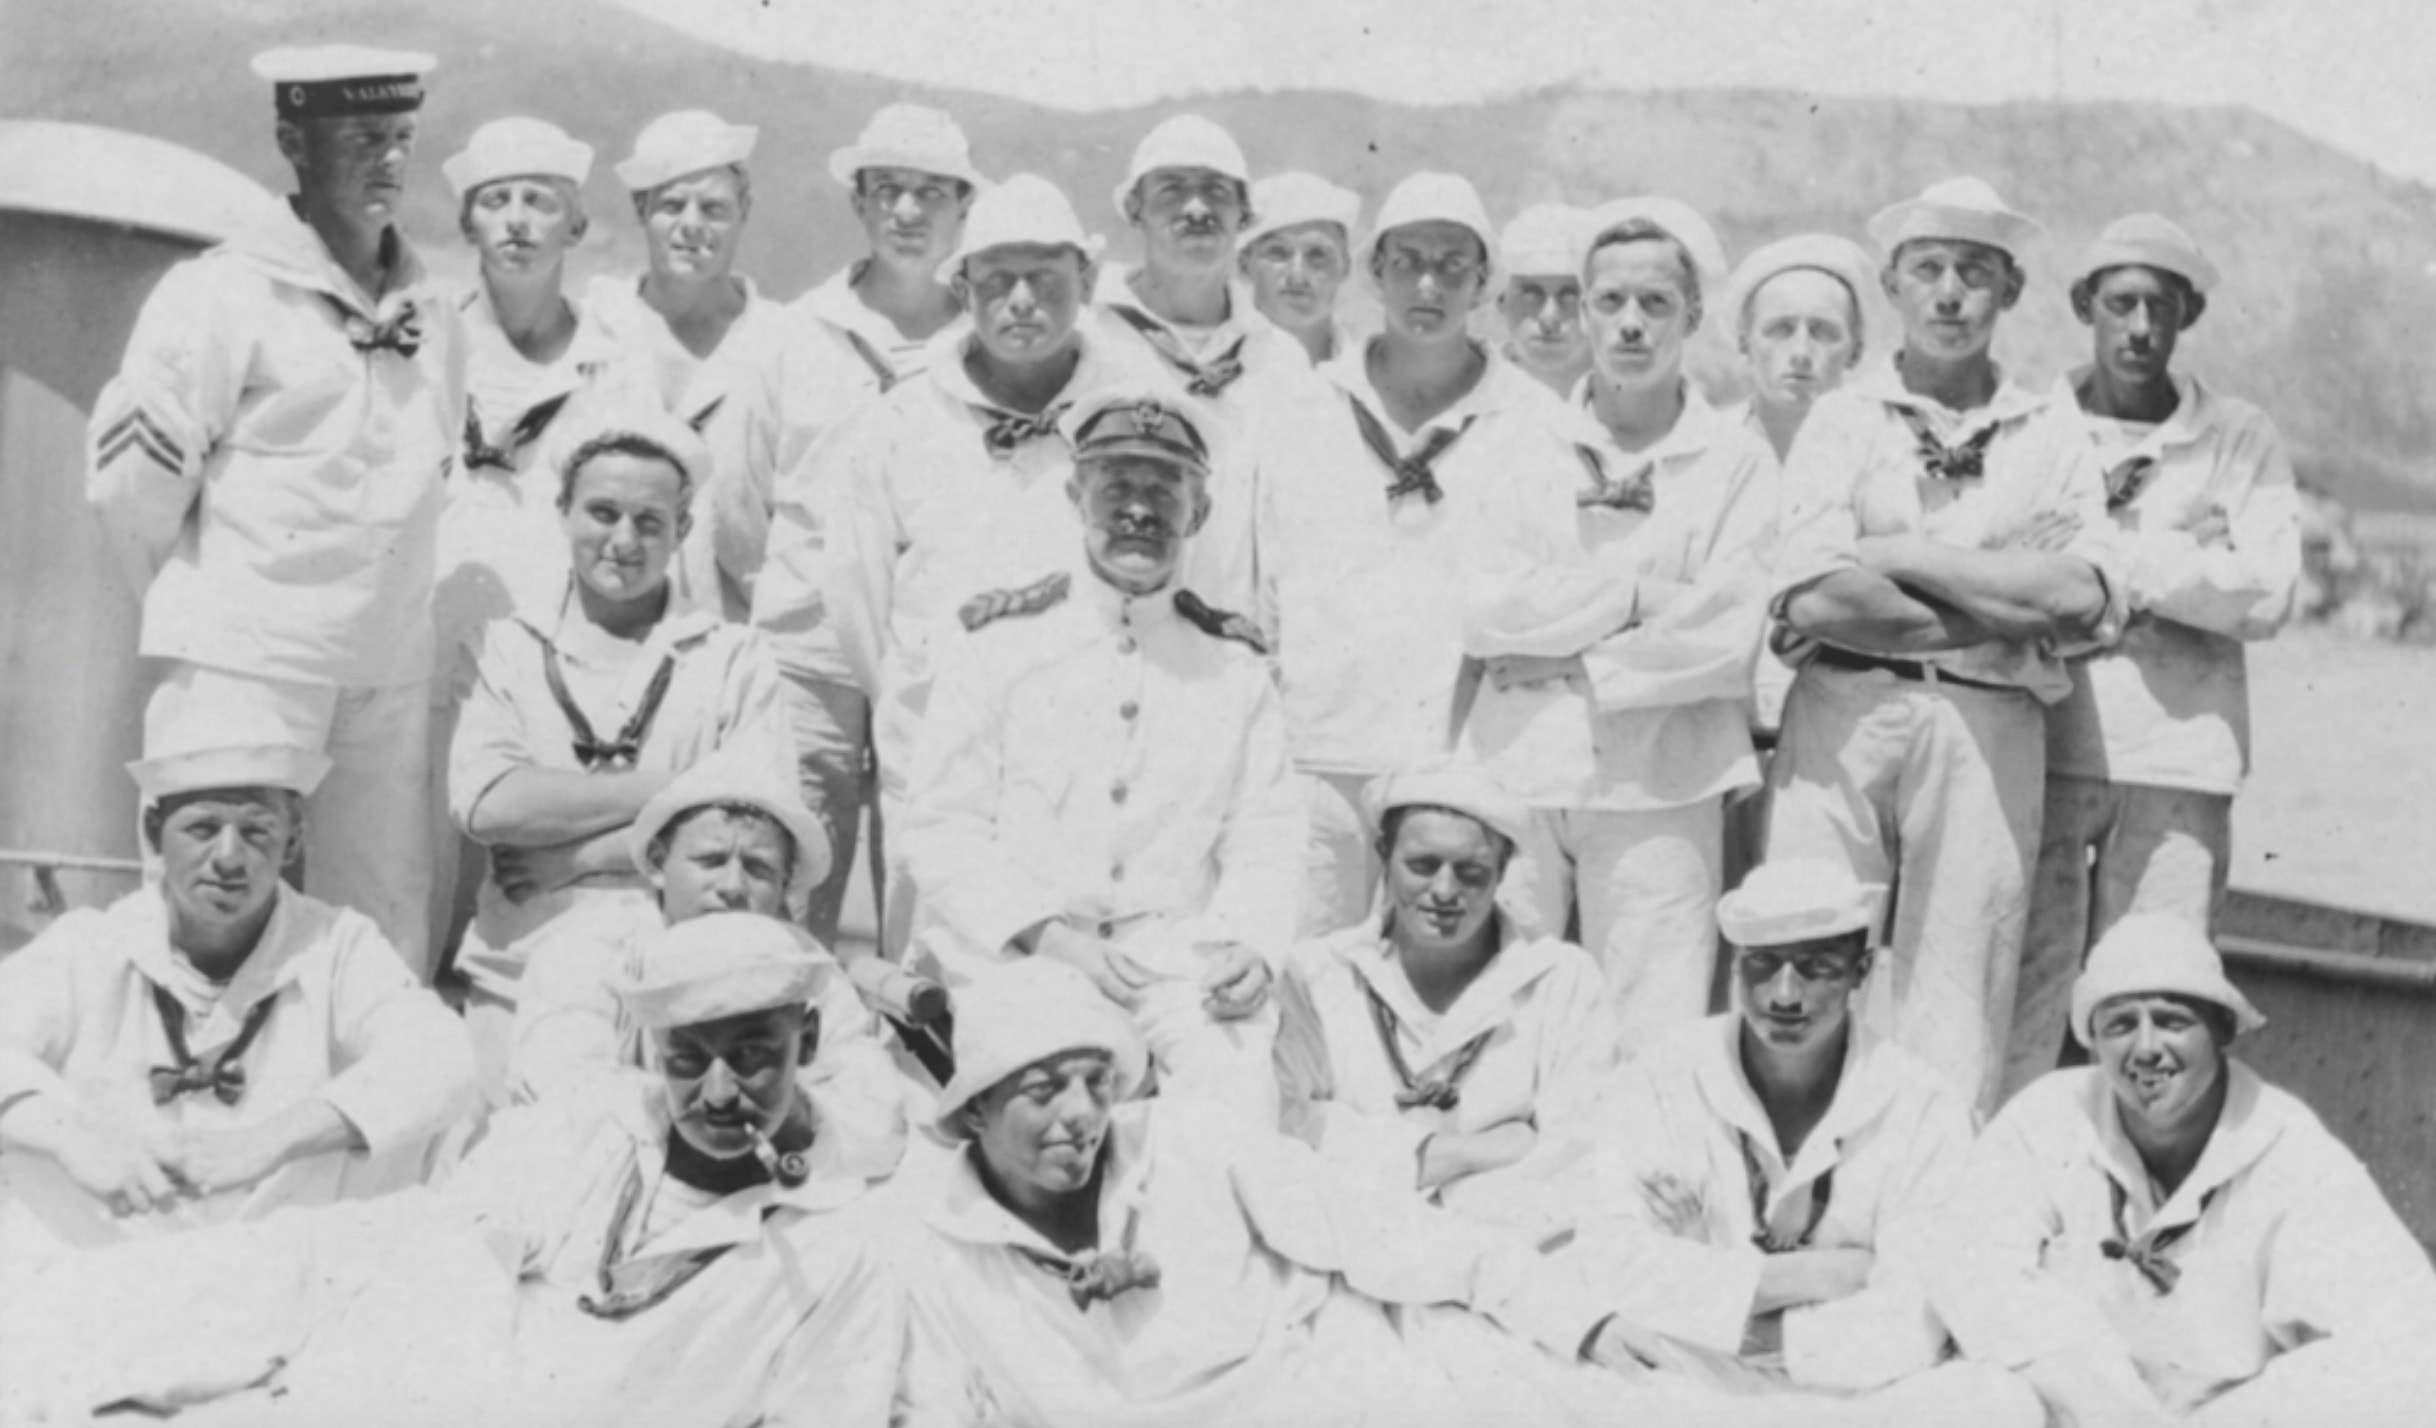 Danish Crew of the Valkyrien